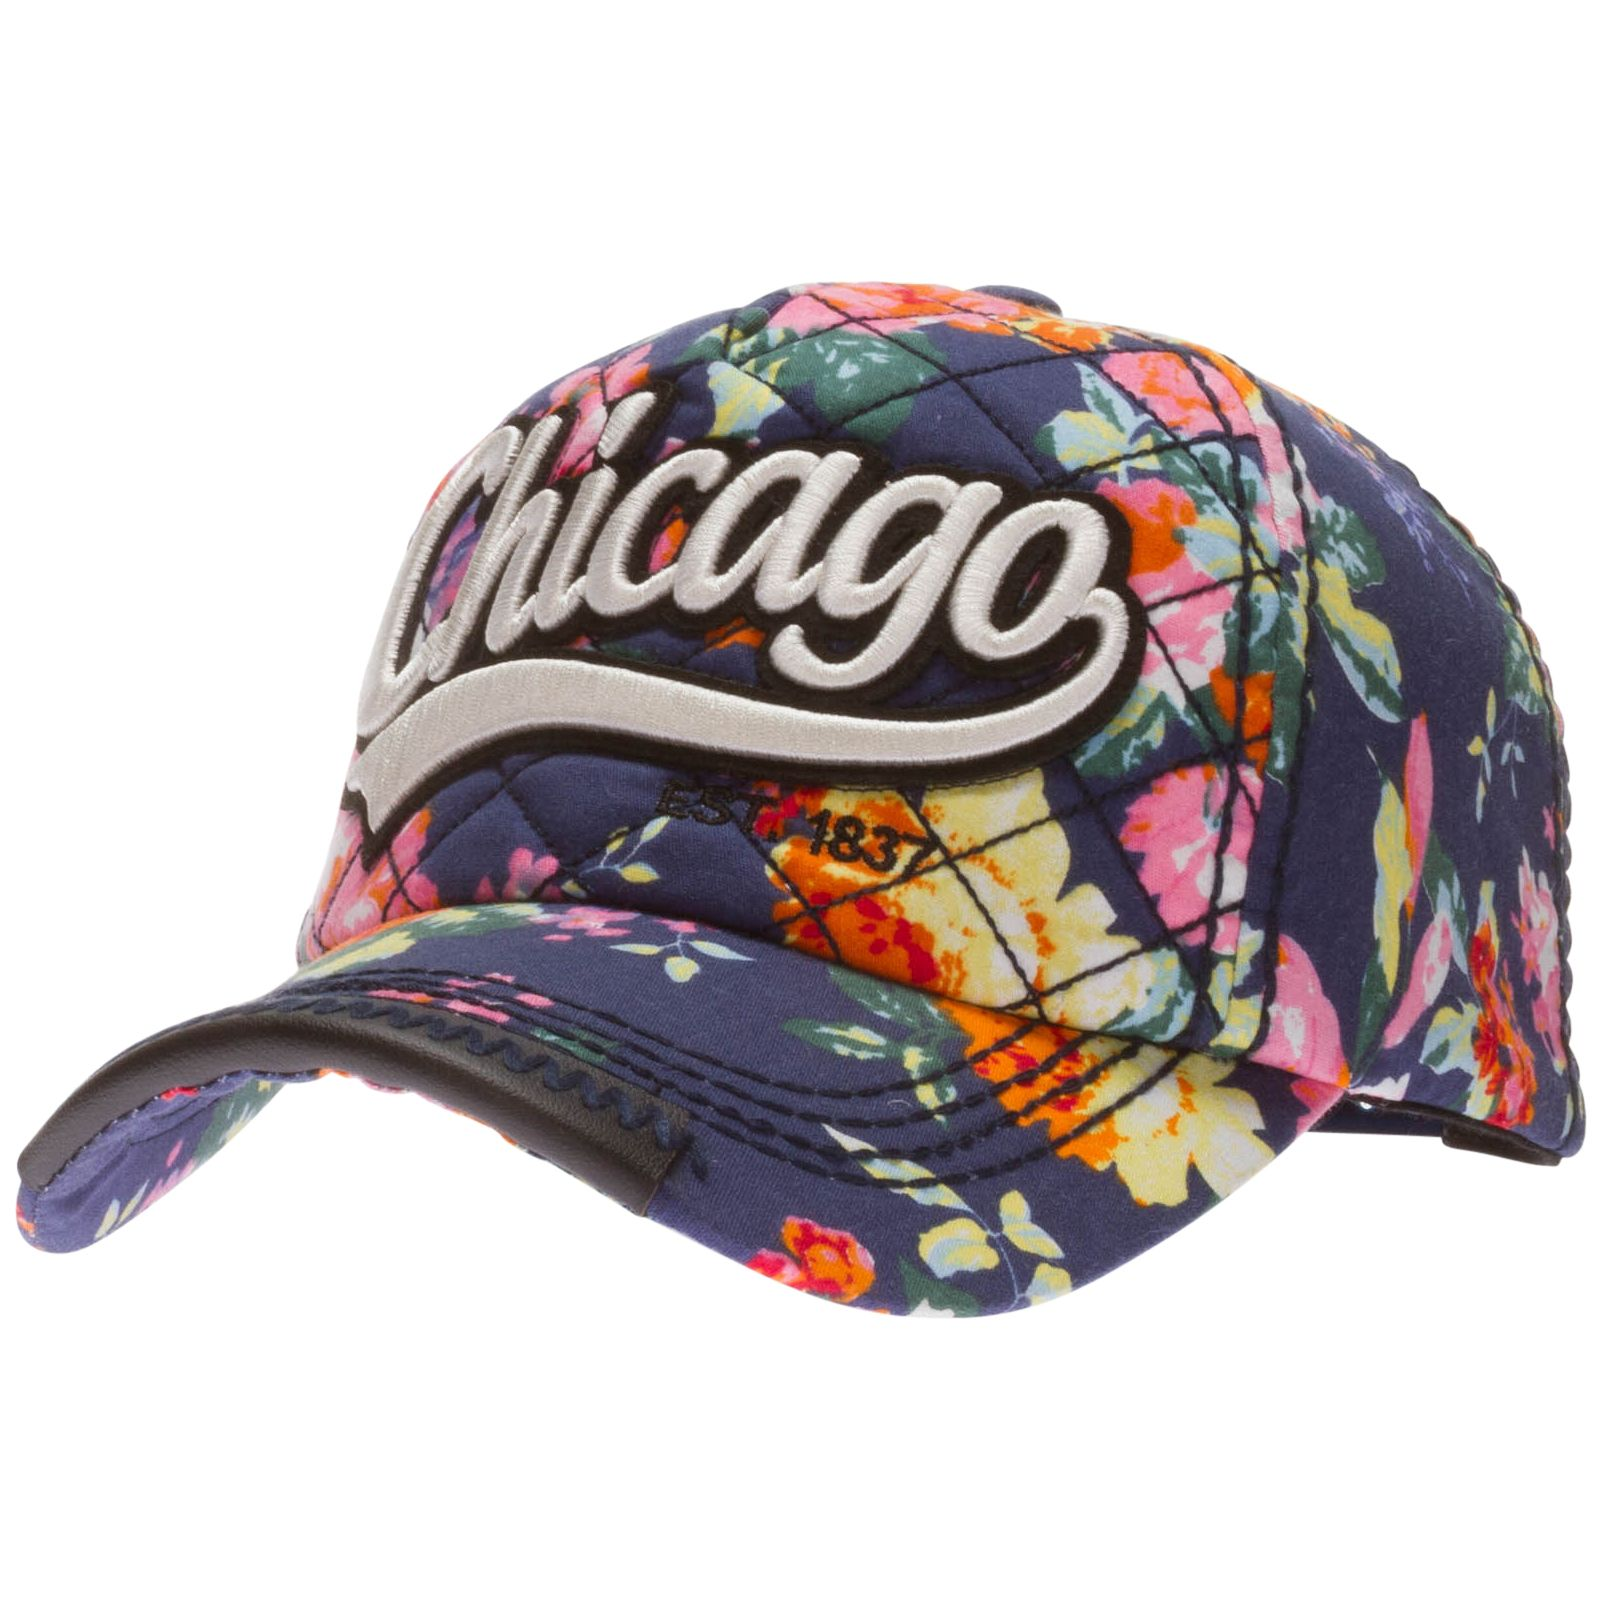 Cabelas Trucker Hat: Chicago Navy Floral Adjustable Hat By Robin Ruth #Chicago